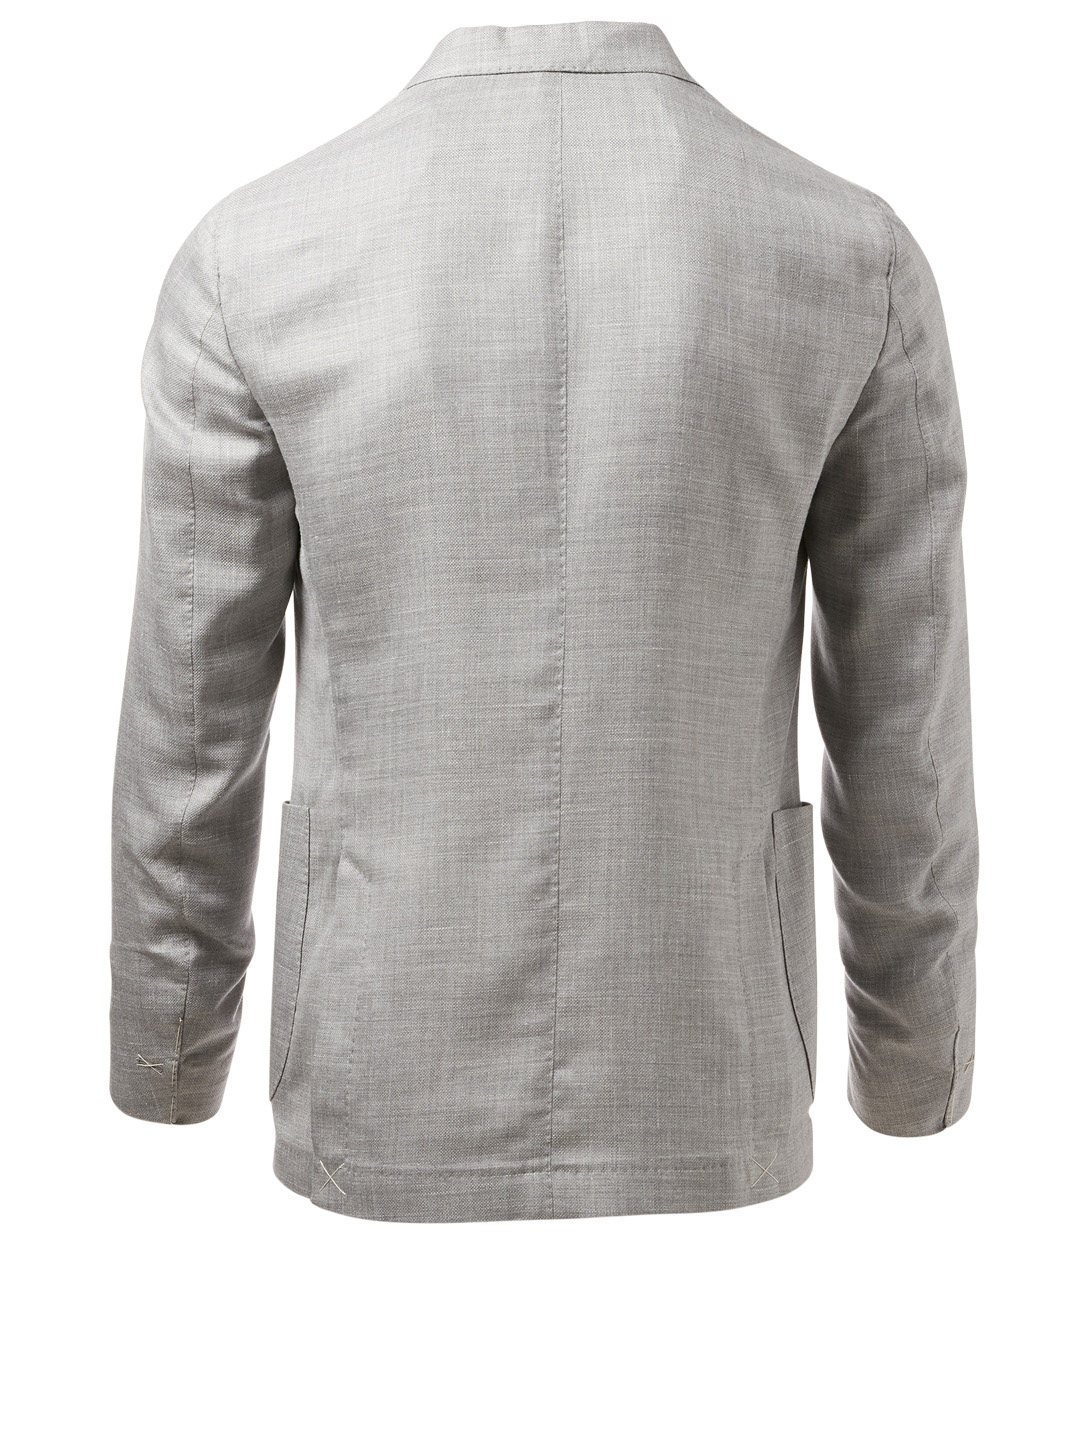 ELEVENTY Cashmere Mélange Jacket Men's Grey